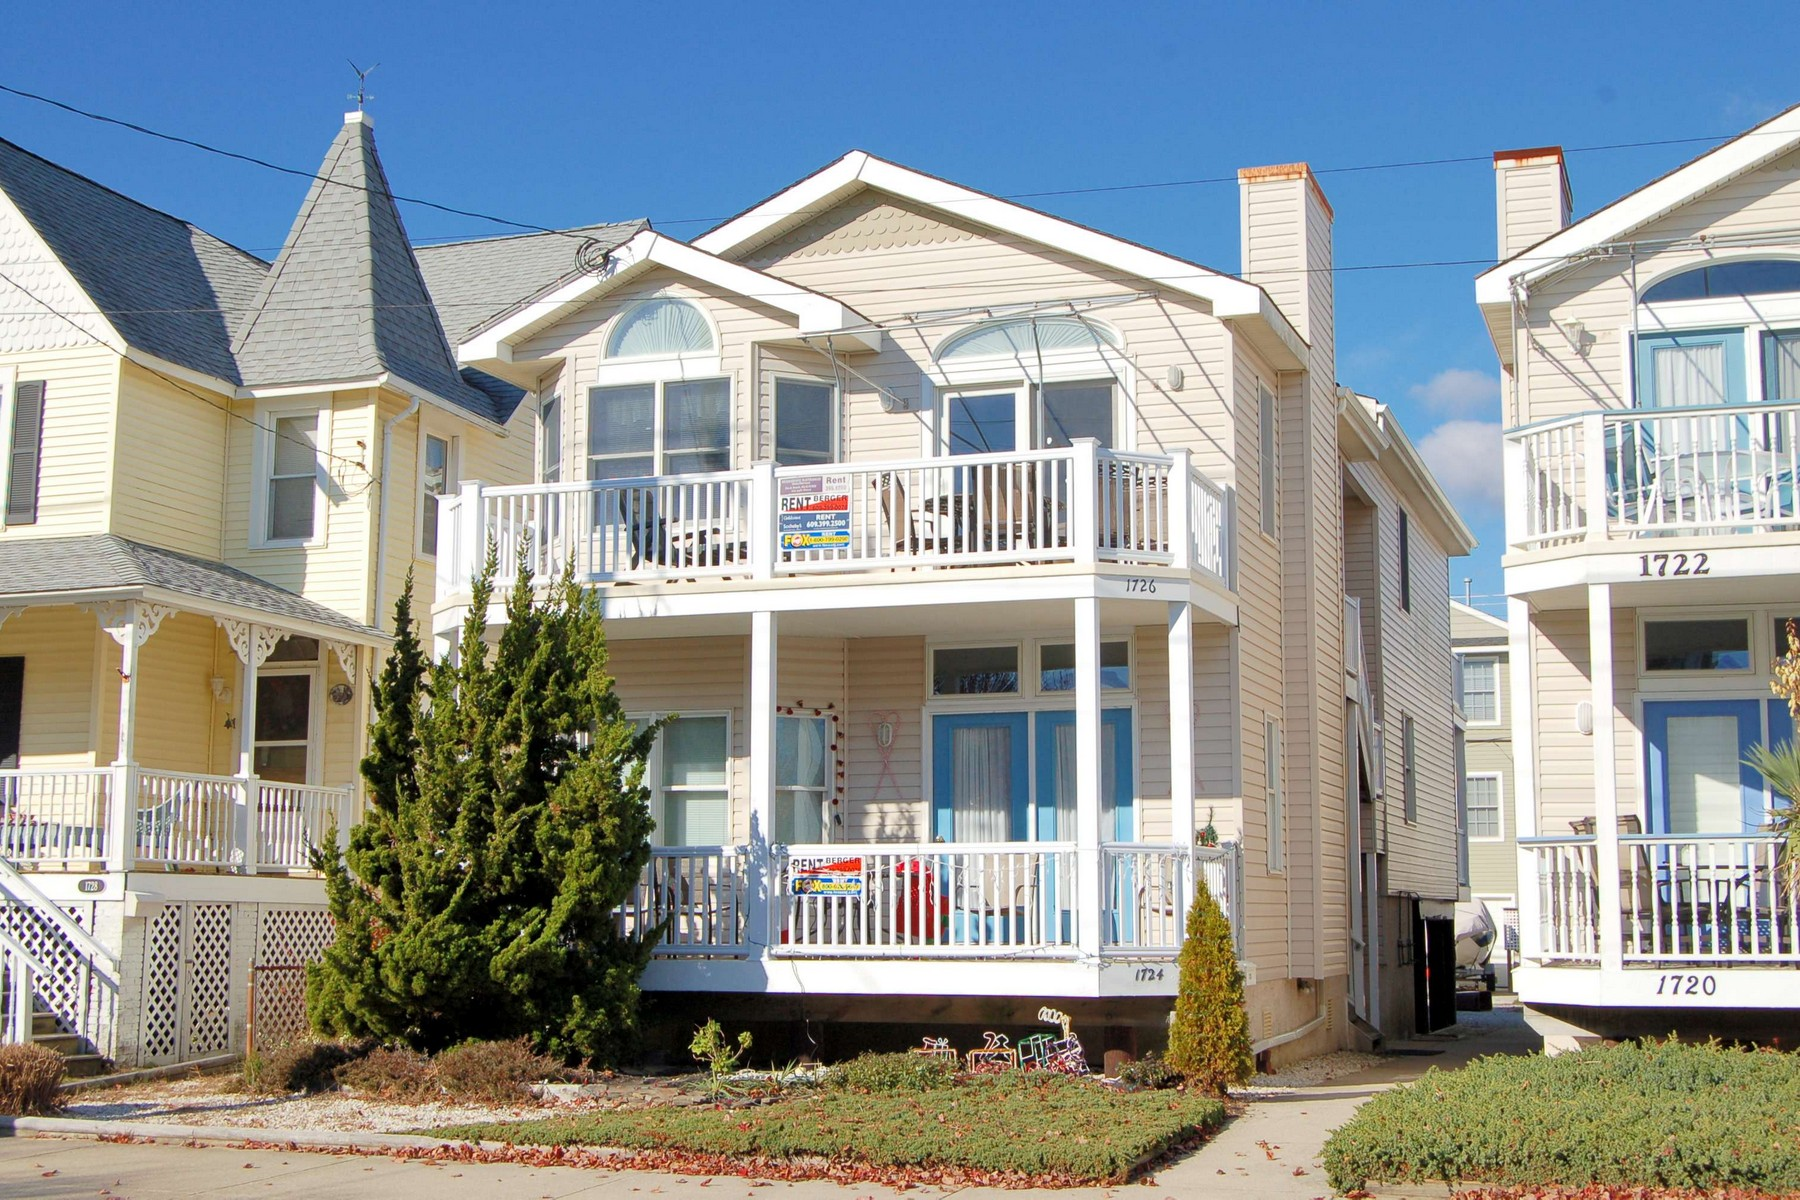 Condominium for Sale at Conveniently Located First Floor Condo 1724 Asbury Avenue Ocean City, New Jersey 08226 United States